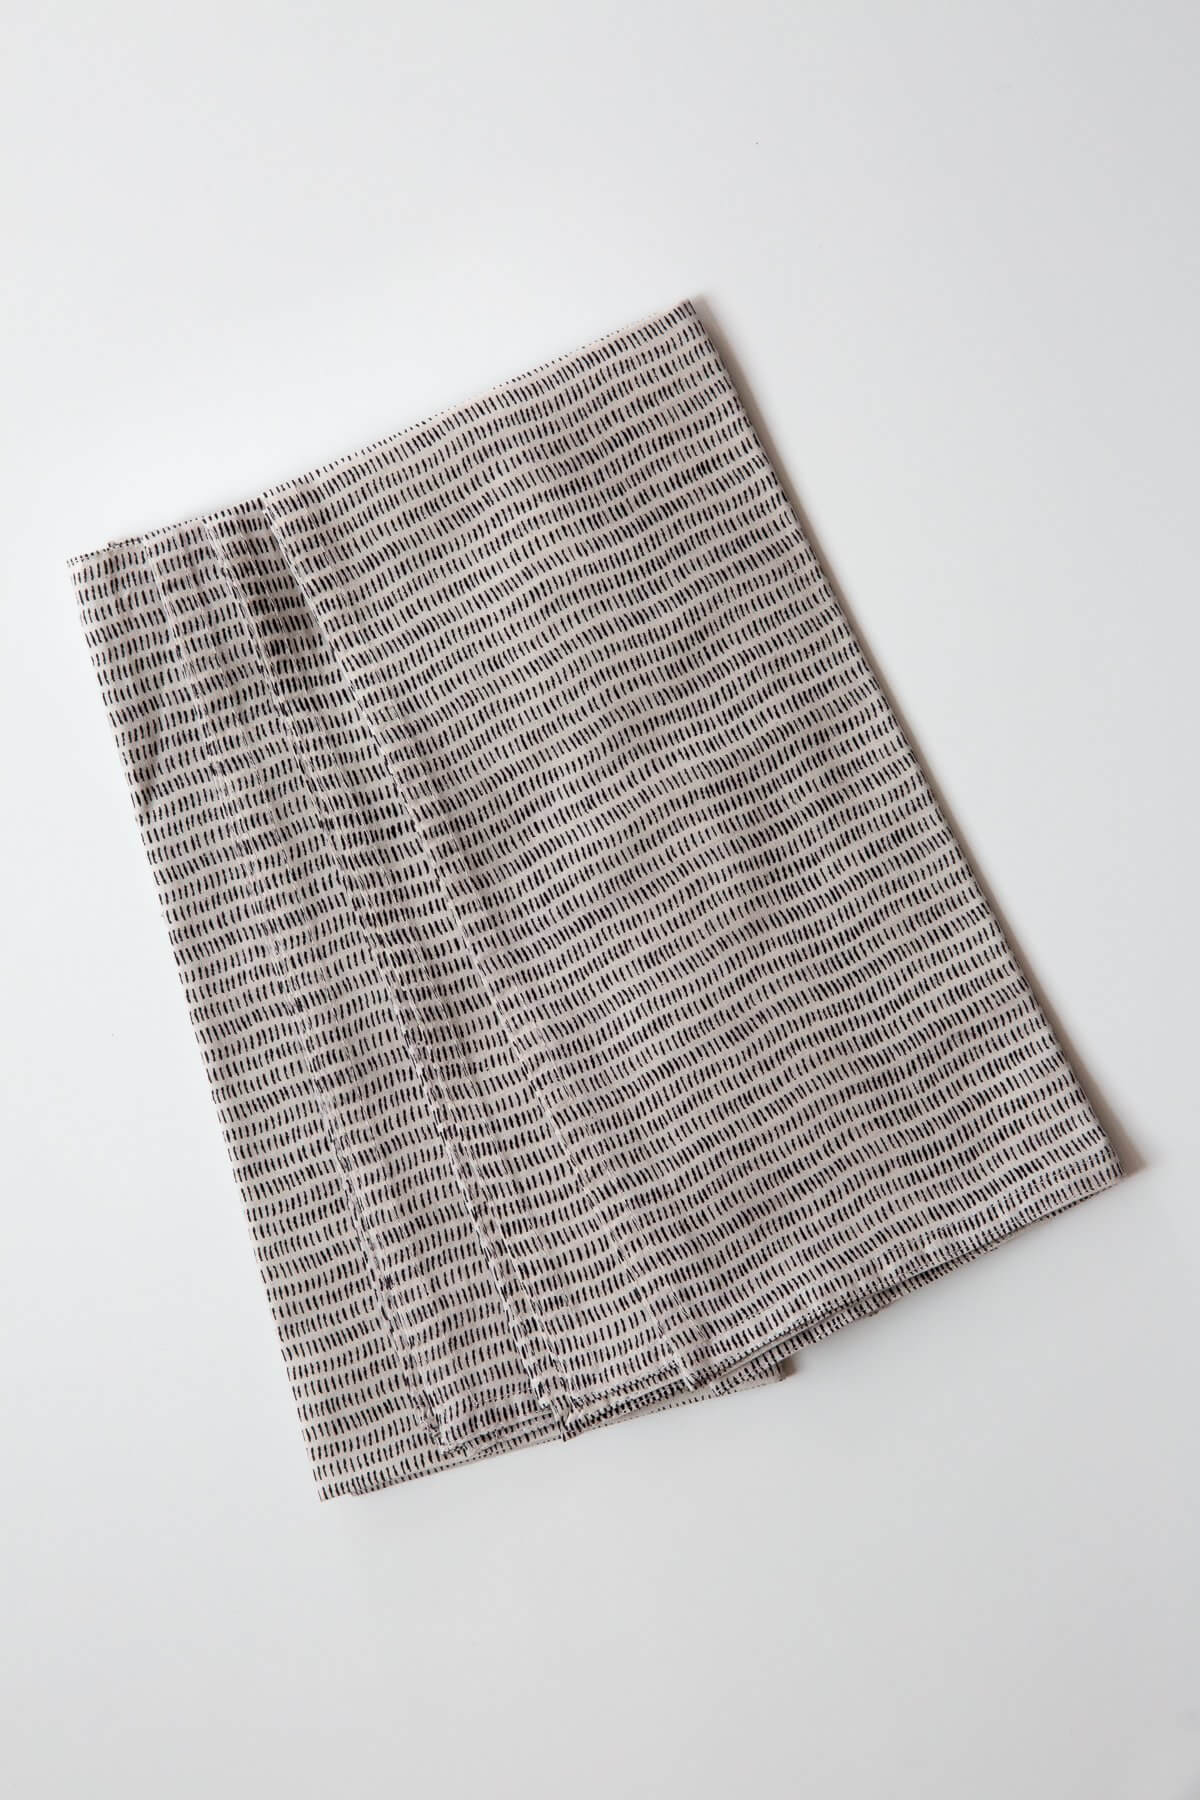 Gray Market Alice Stripes Black Napkin Set